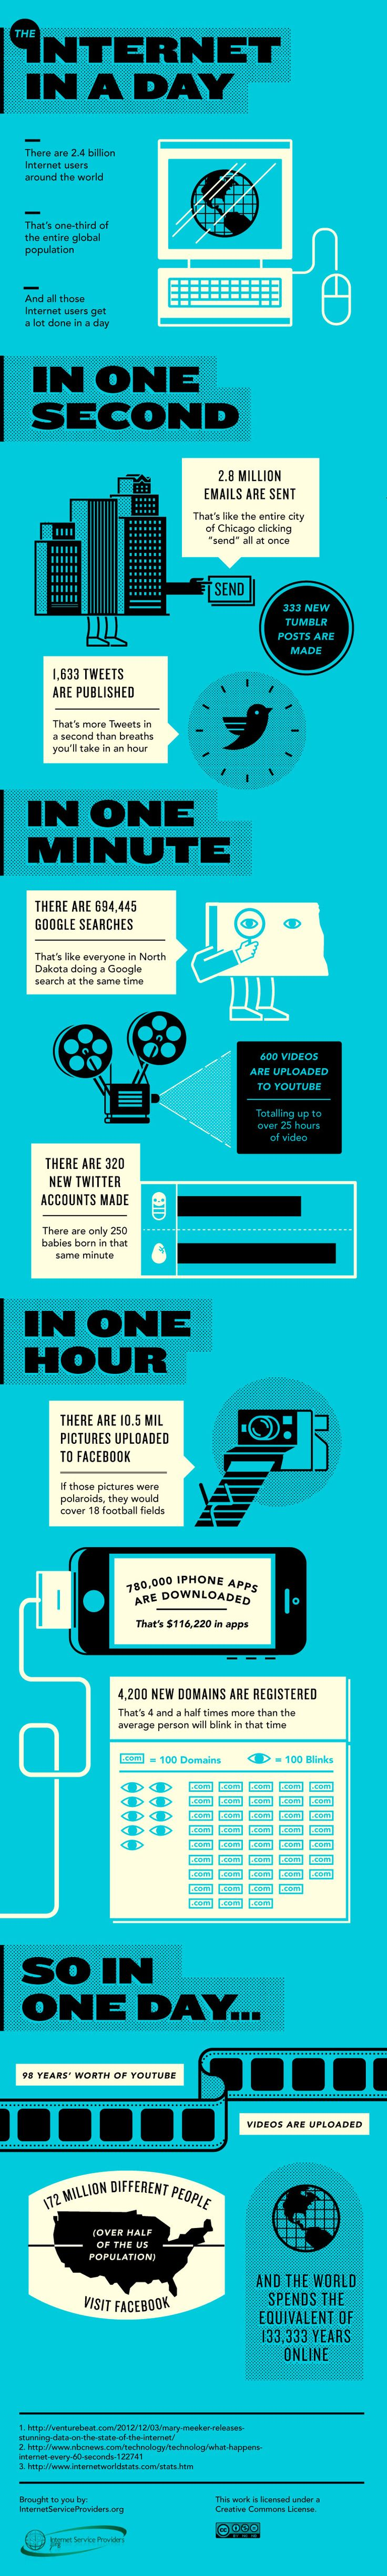 """Incredible to think that in 1 hour 10.5 Million pictures are uploaded to #Facebook. Click image to see more interesting tidbits on """"#Internet in a Day""""."""